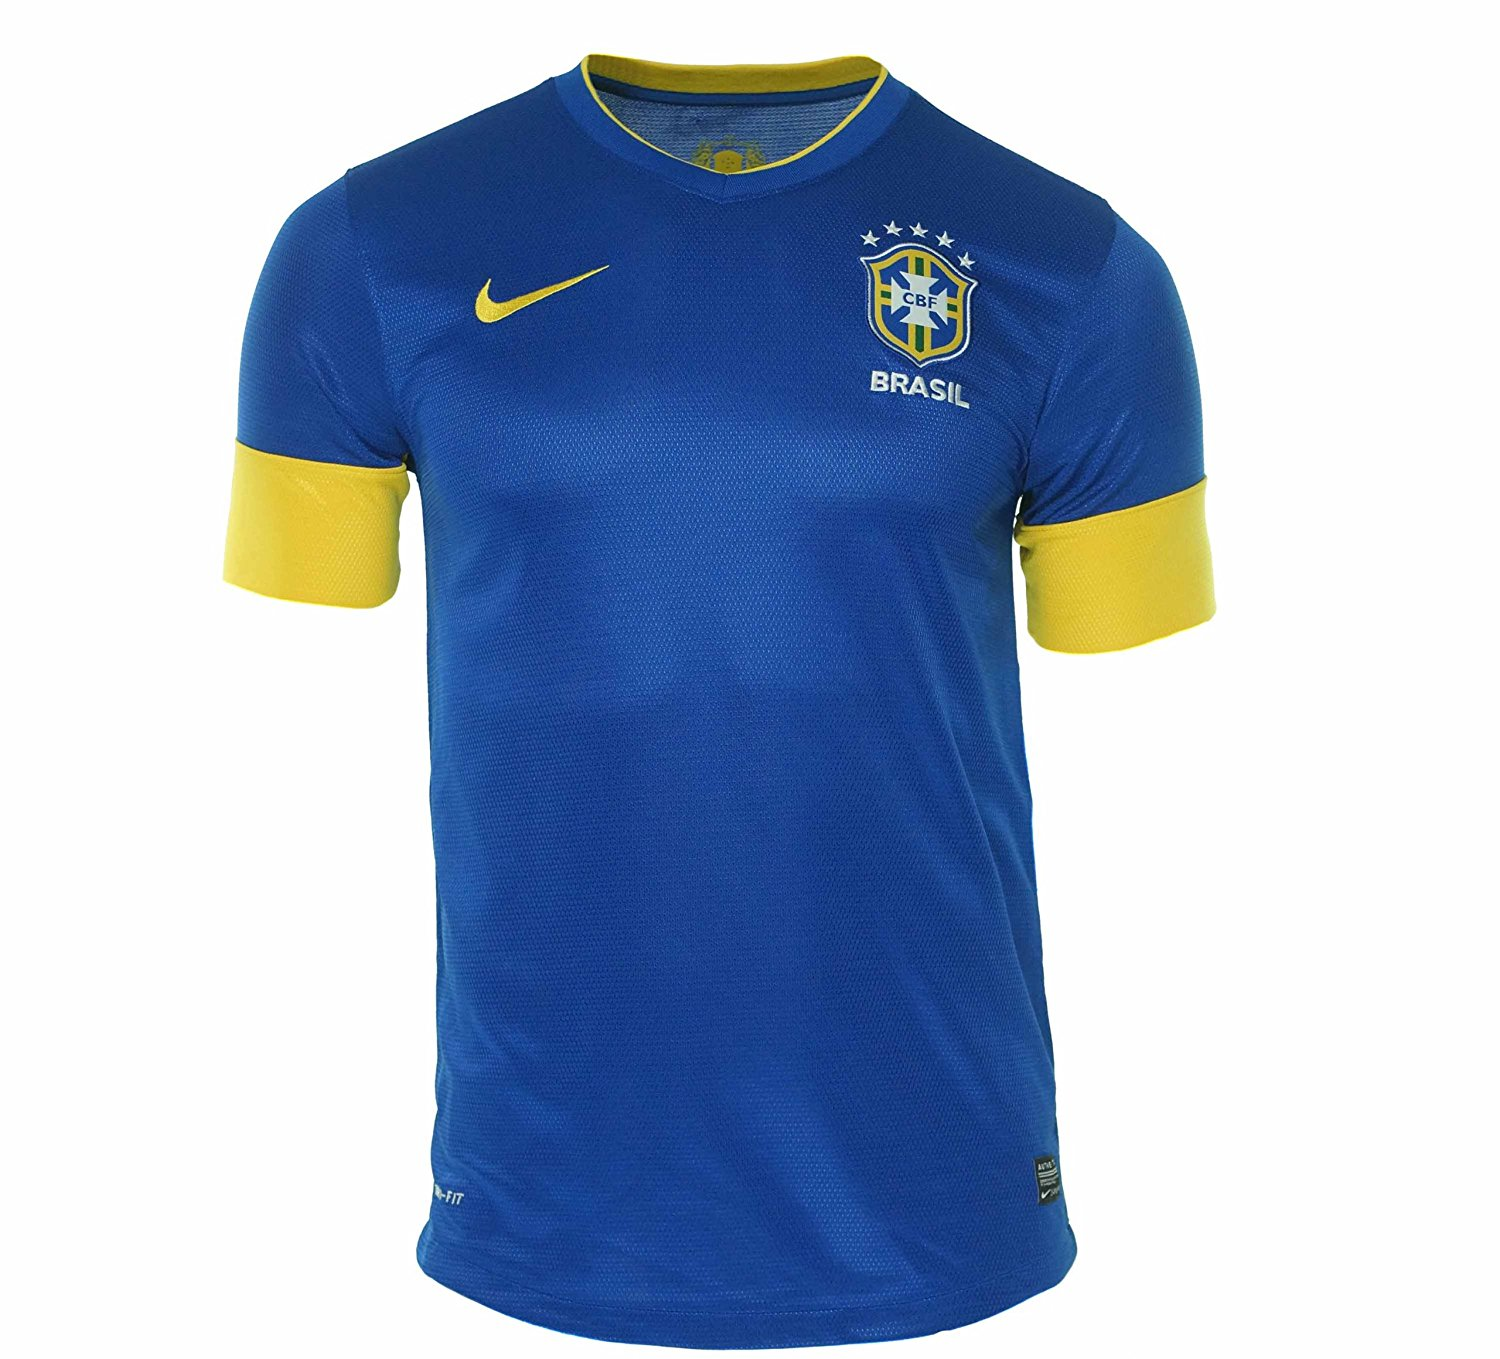 80796290583 Get Quotations · World Cup Nike Brazil National Team 2012 Home Jersey -  Blue Yellow (Small)